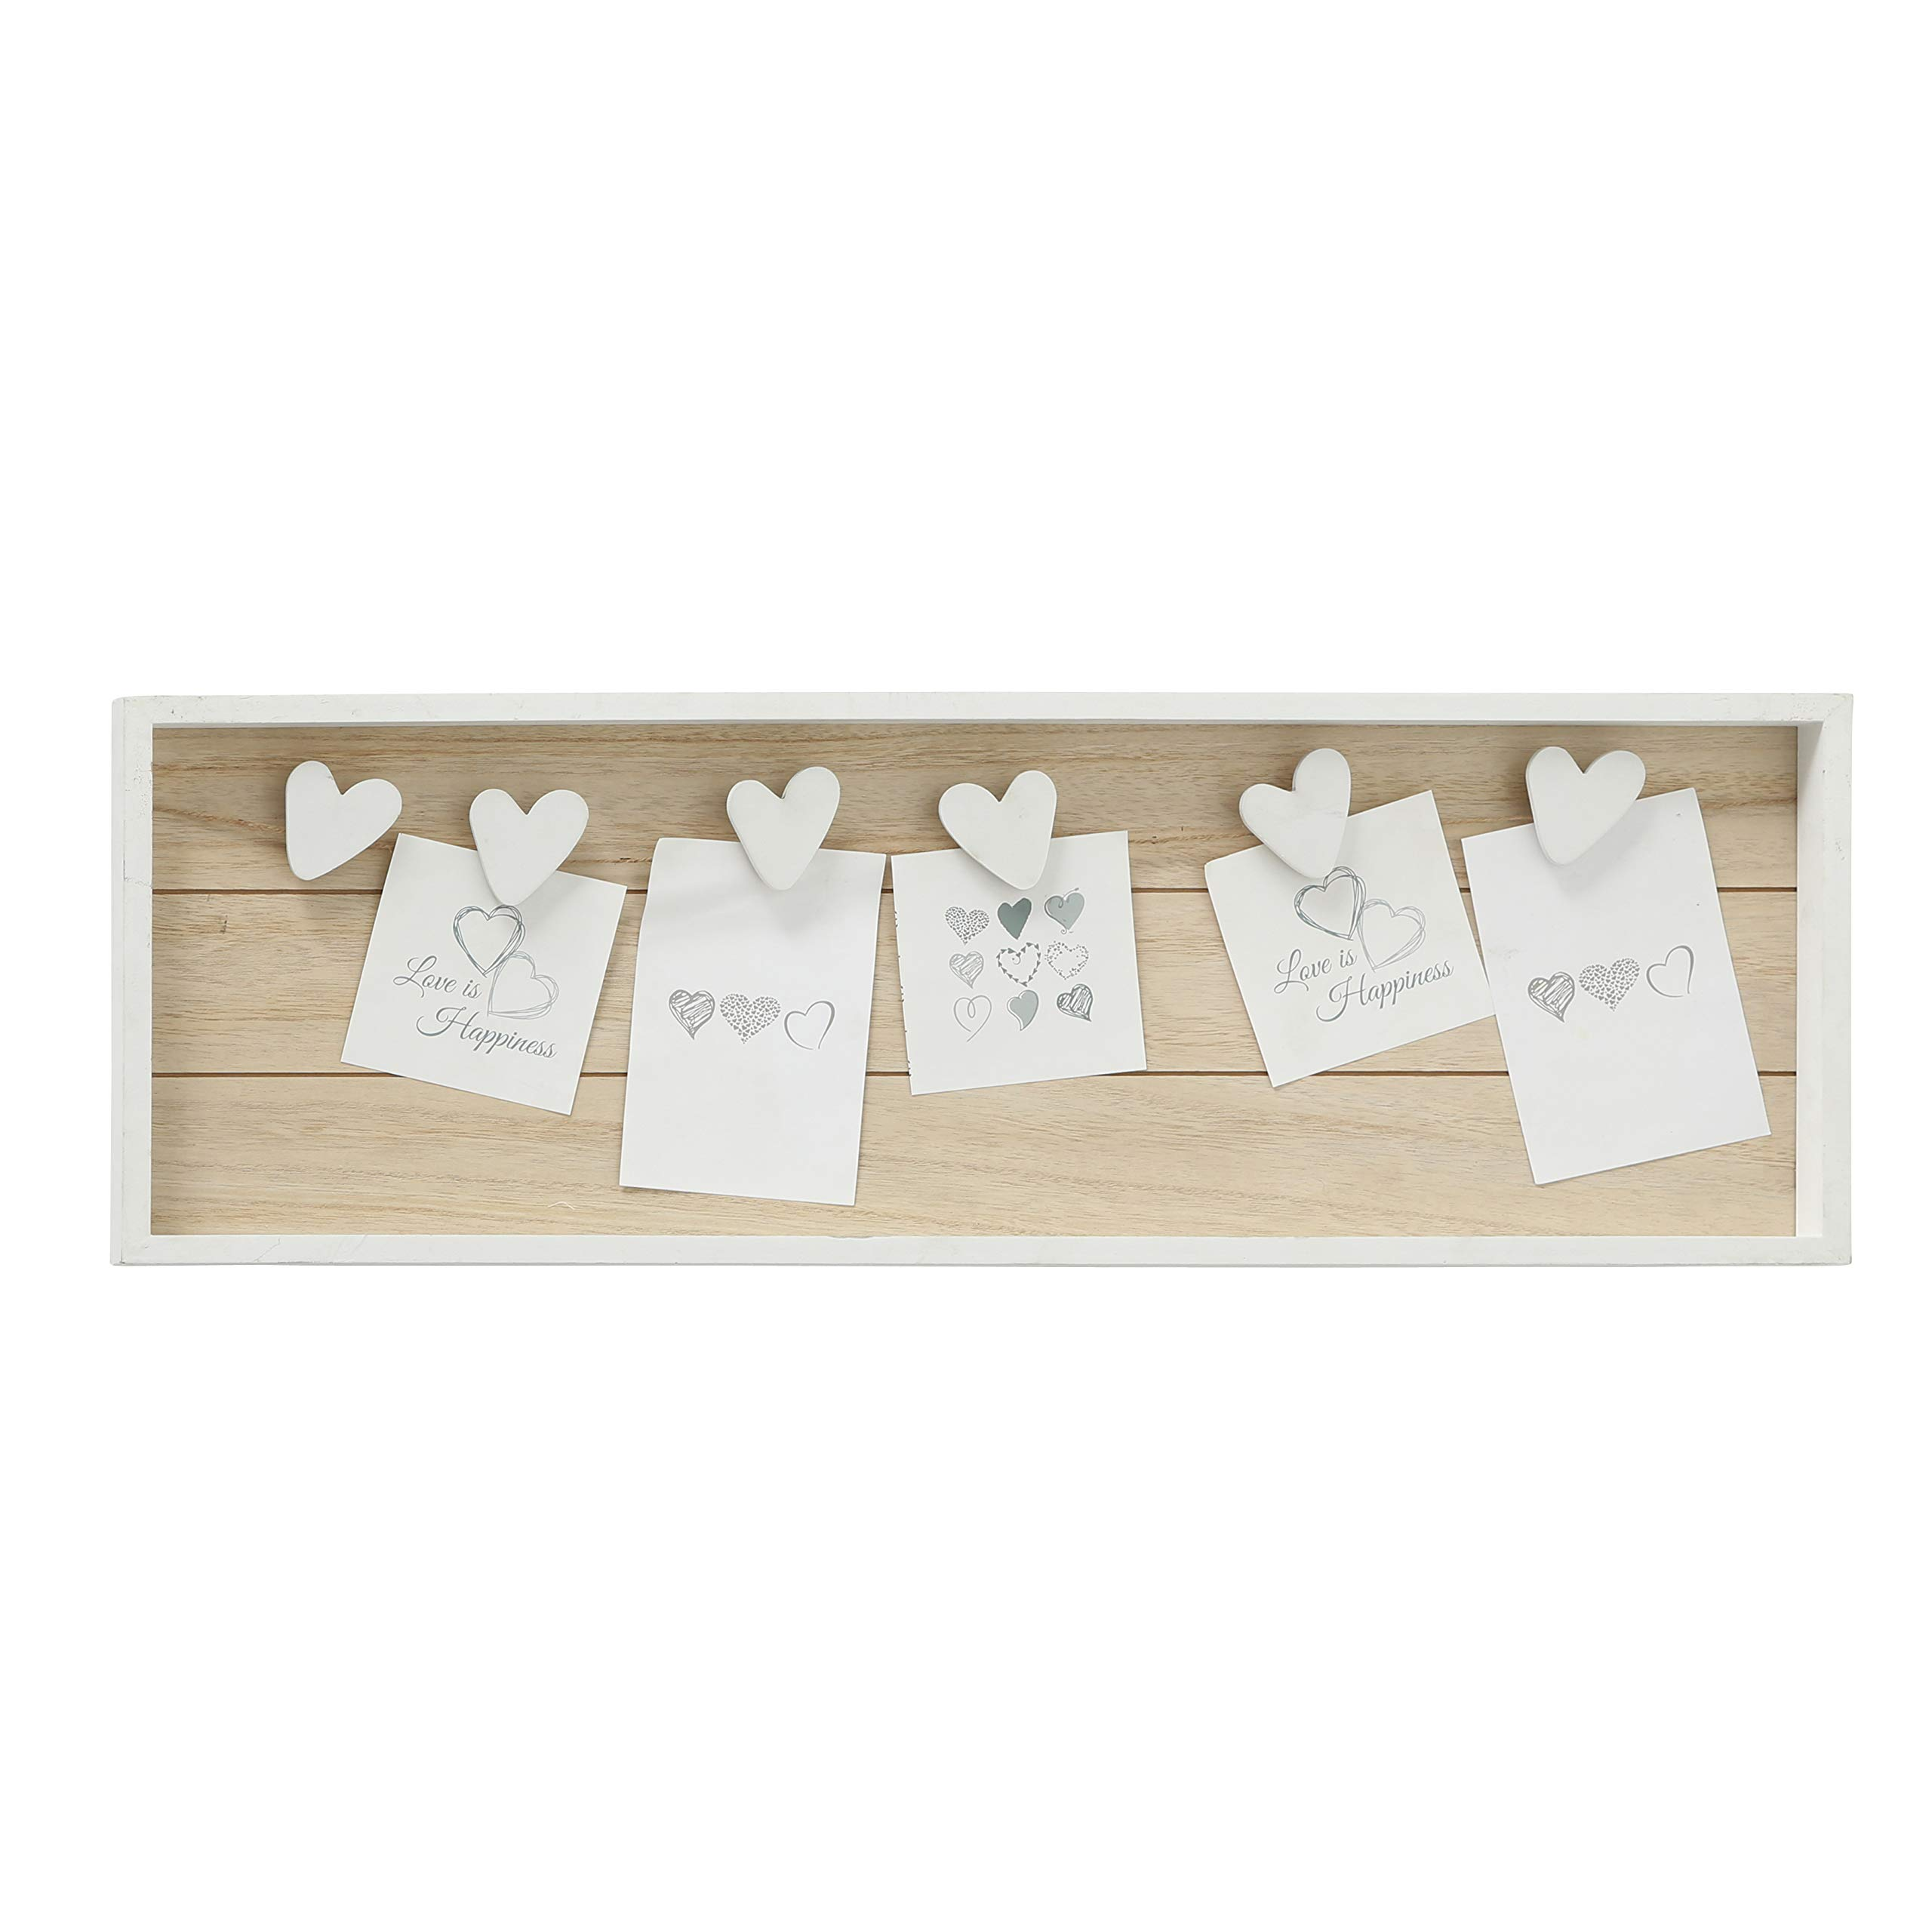 WHW Whole House Worlds Farmers Market Clothespin Memo Board, 6 Heart Clips, Twine Detail, Rustic Ship Lap, Contrast White Frame, Easy-Mount Saw Tooth Hangers by WHW Whole House Worlds